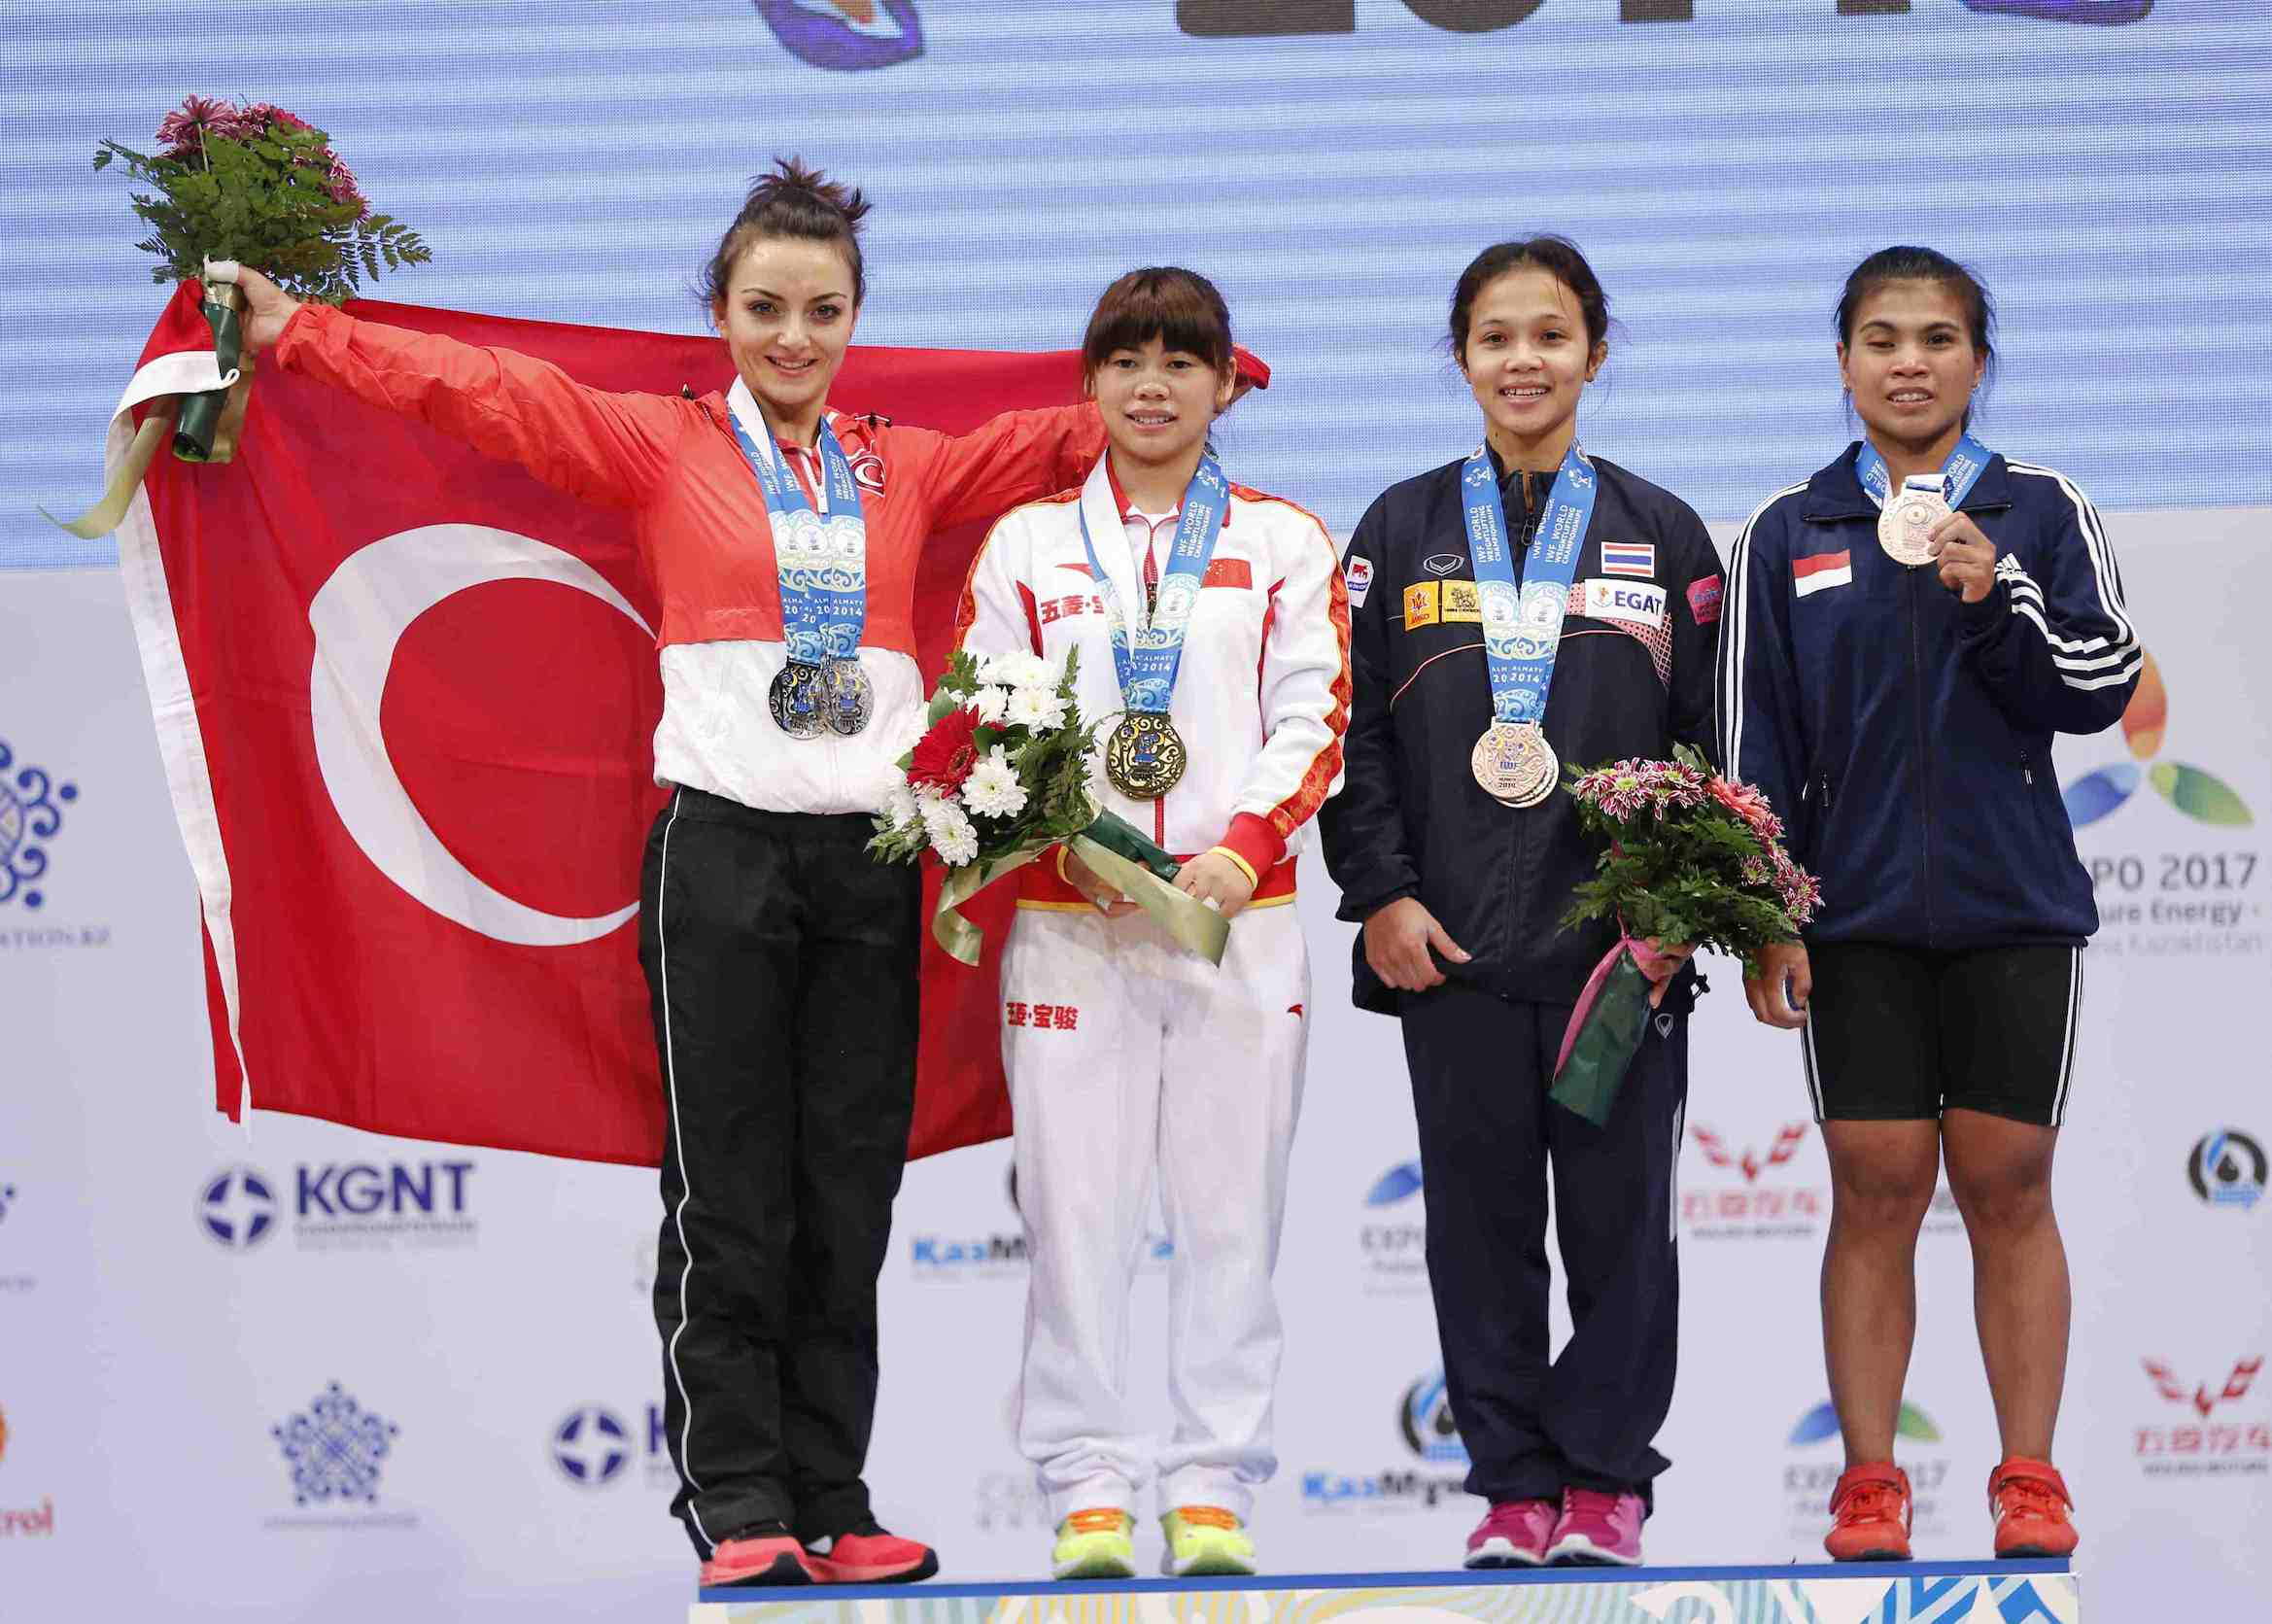 There was heartbreak for Sibel Ozkan Konak (left) who was beaten into second place for the seventh time ©Almaty 2014